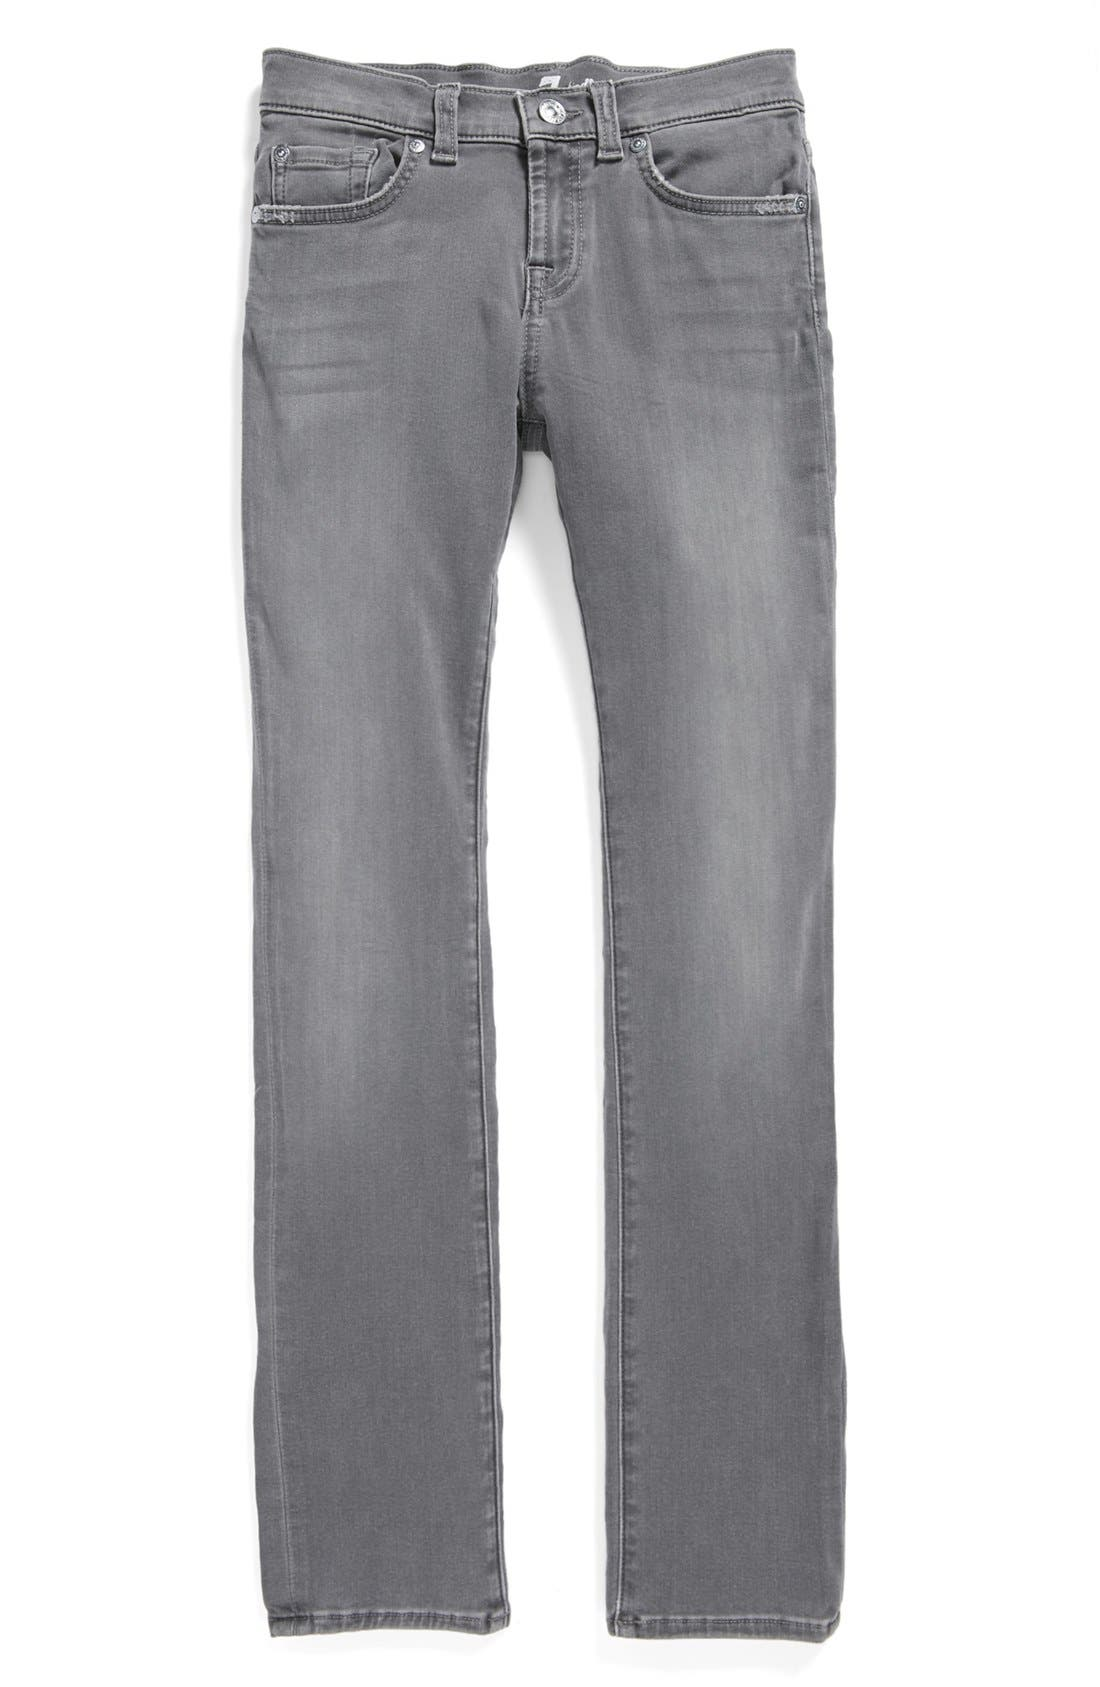 Alternate Image 1 Selected - 7 For All Mankind® Straight Leg Jeans (Big Girls)